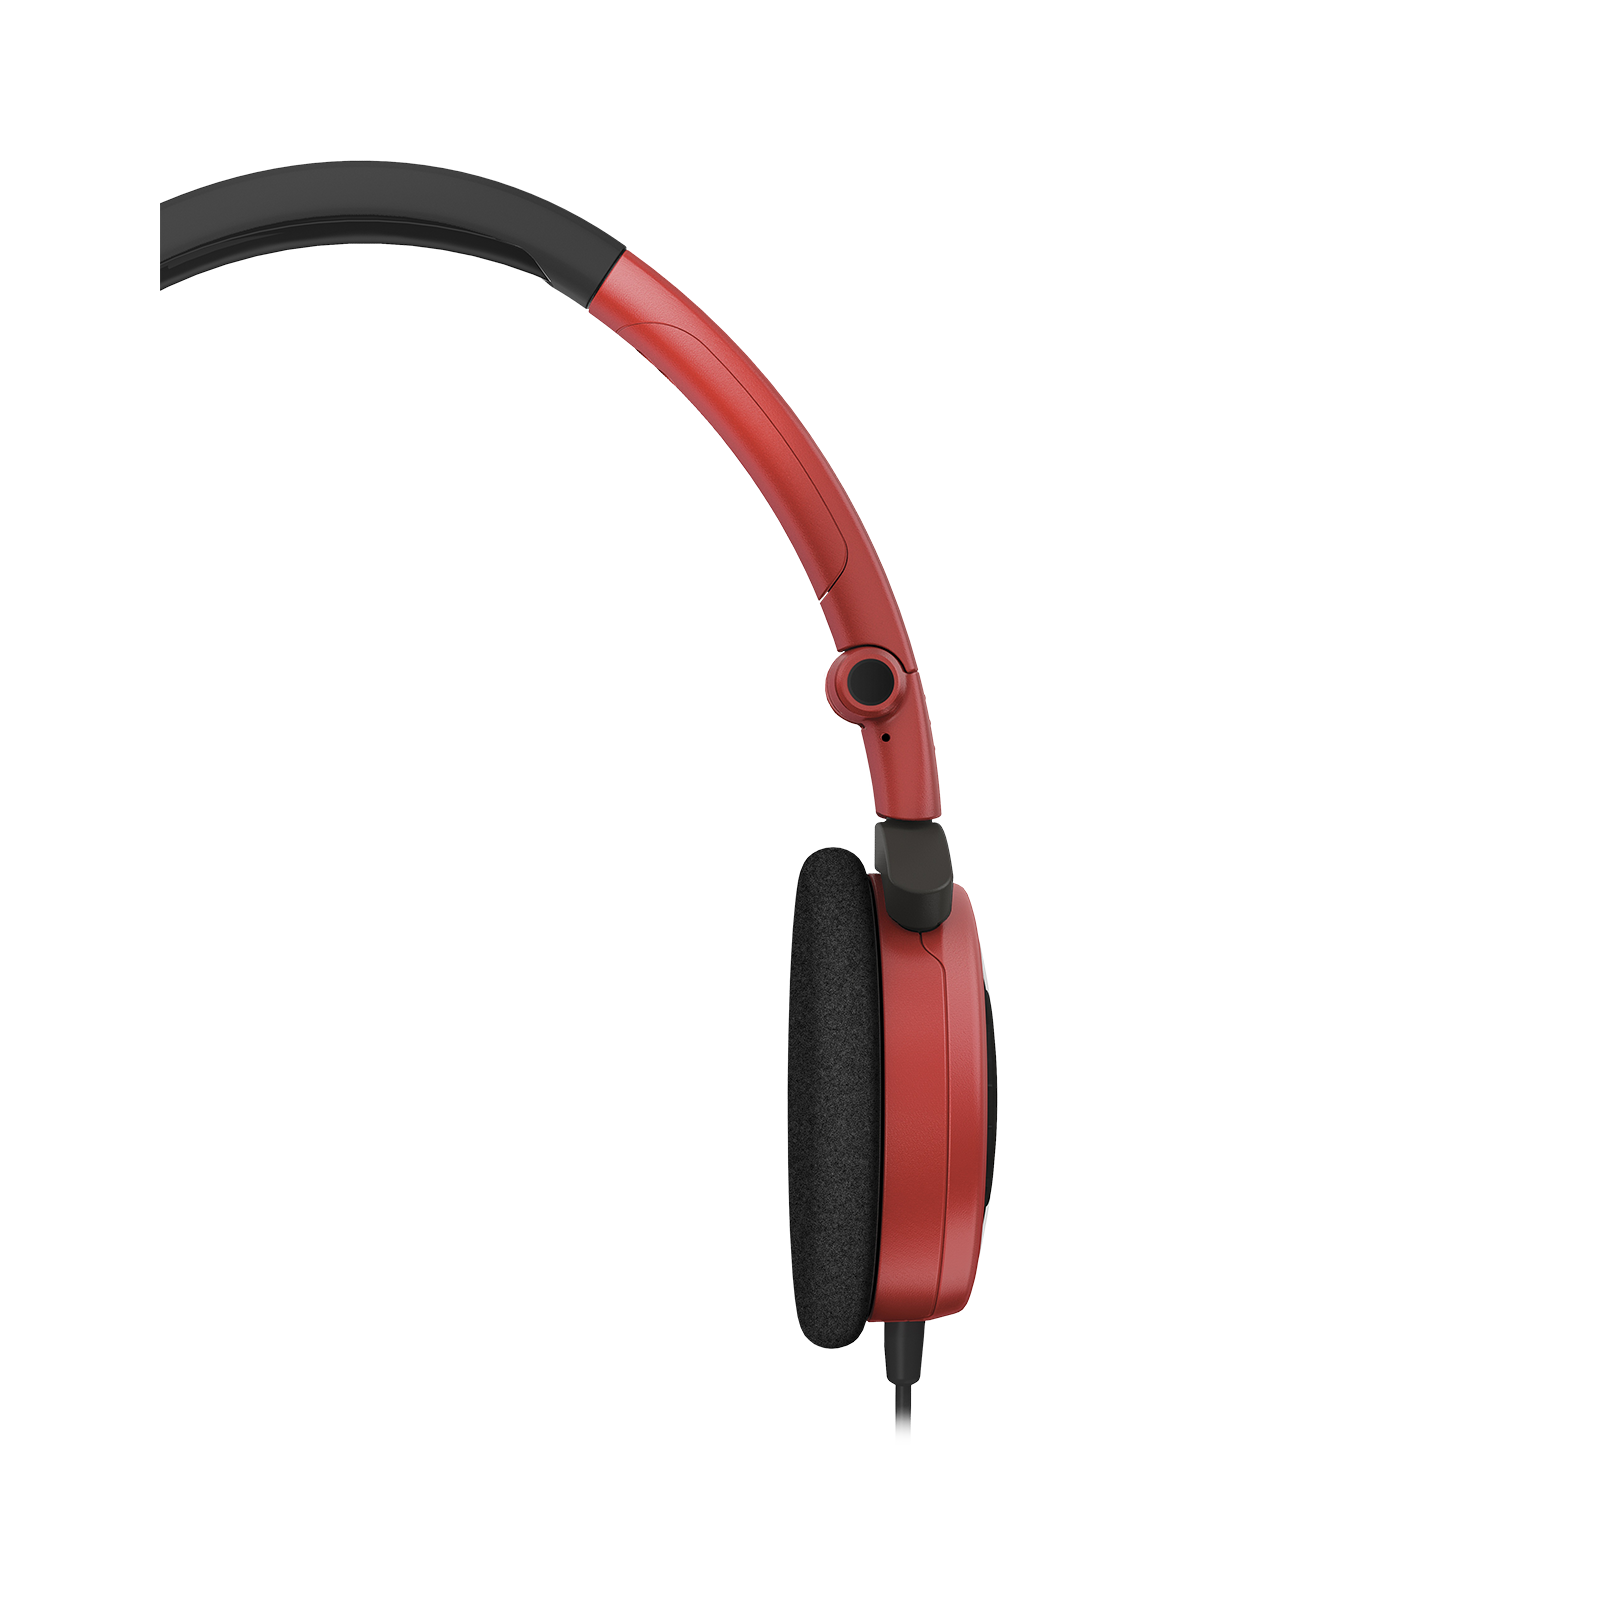 Y 30 - Red - Stylish, uncomplicated, foldable headphones with 1 button universal remote/mic - Detailshot 2